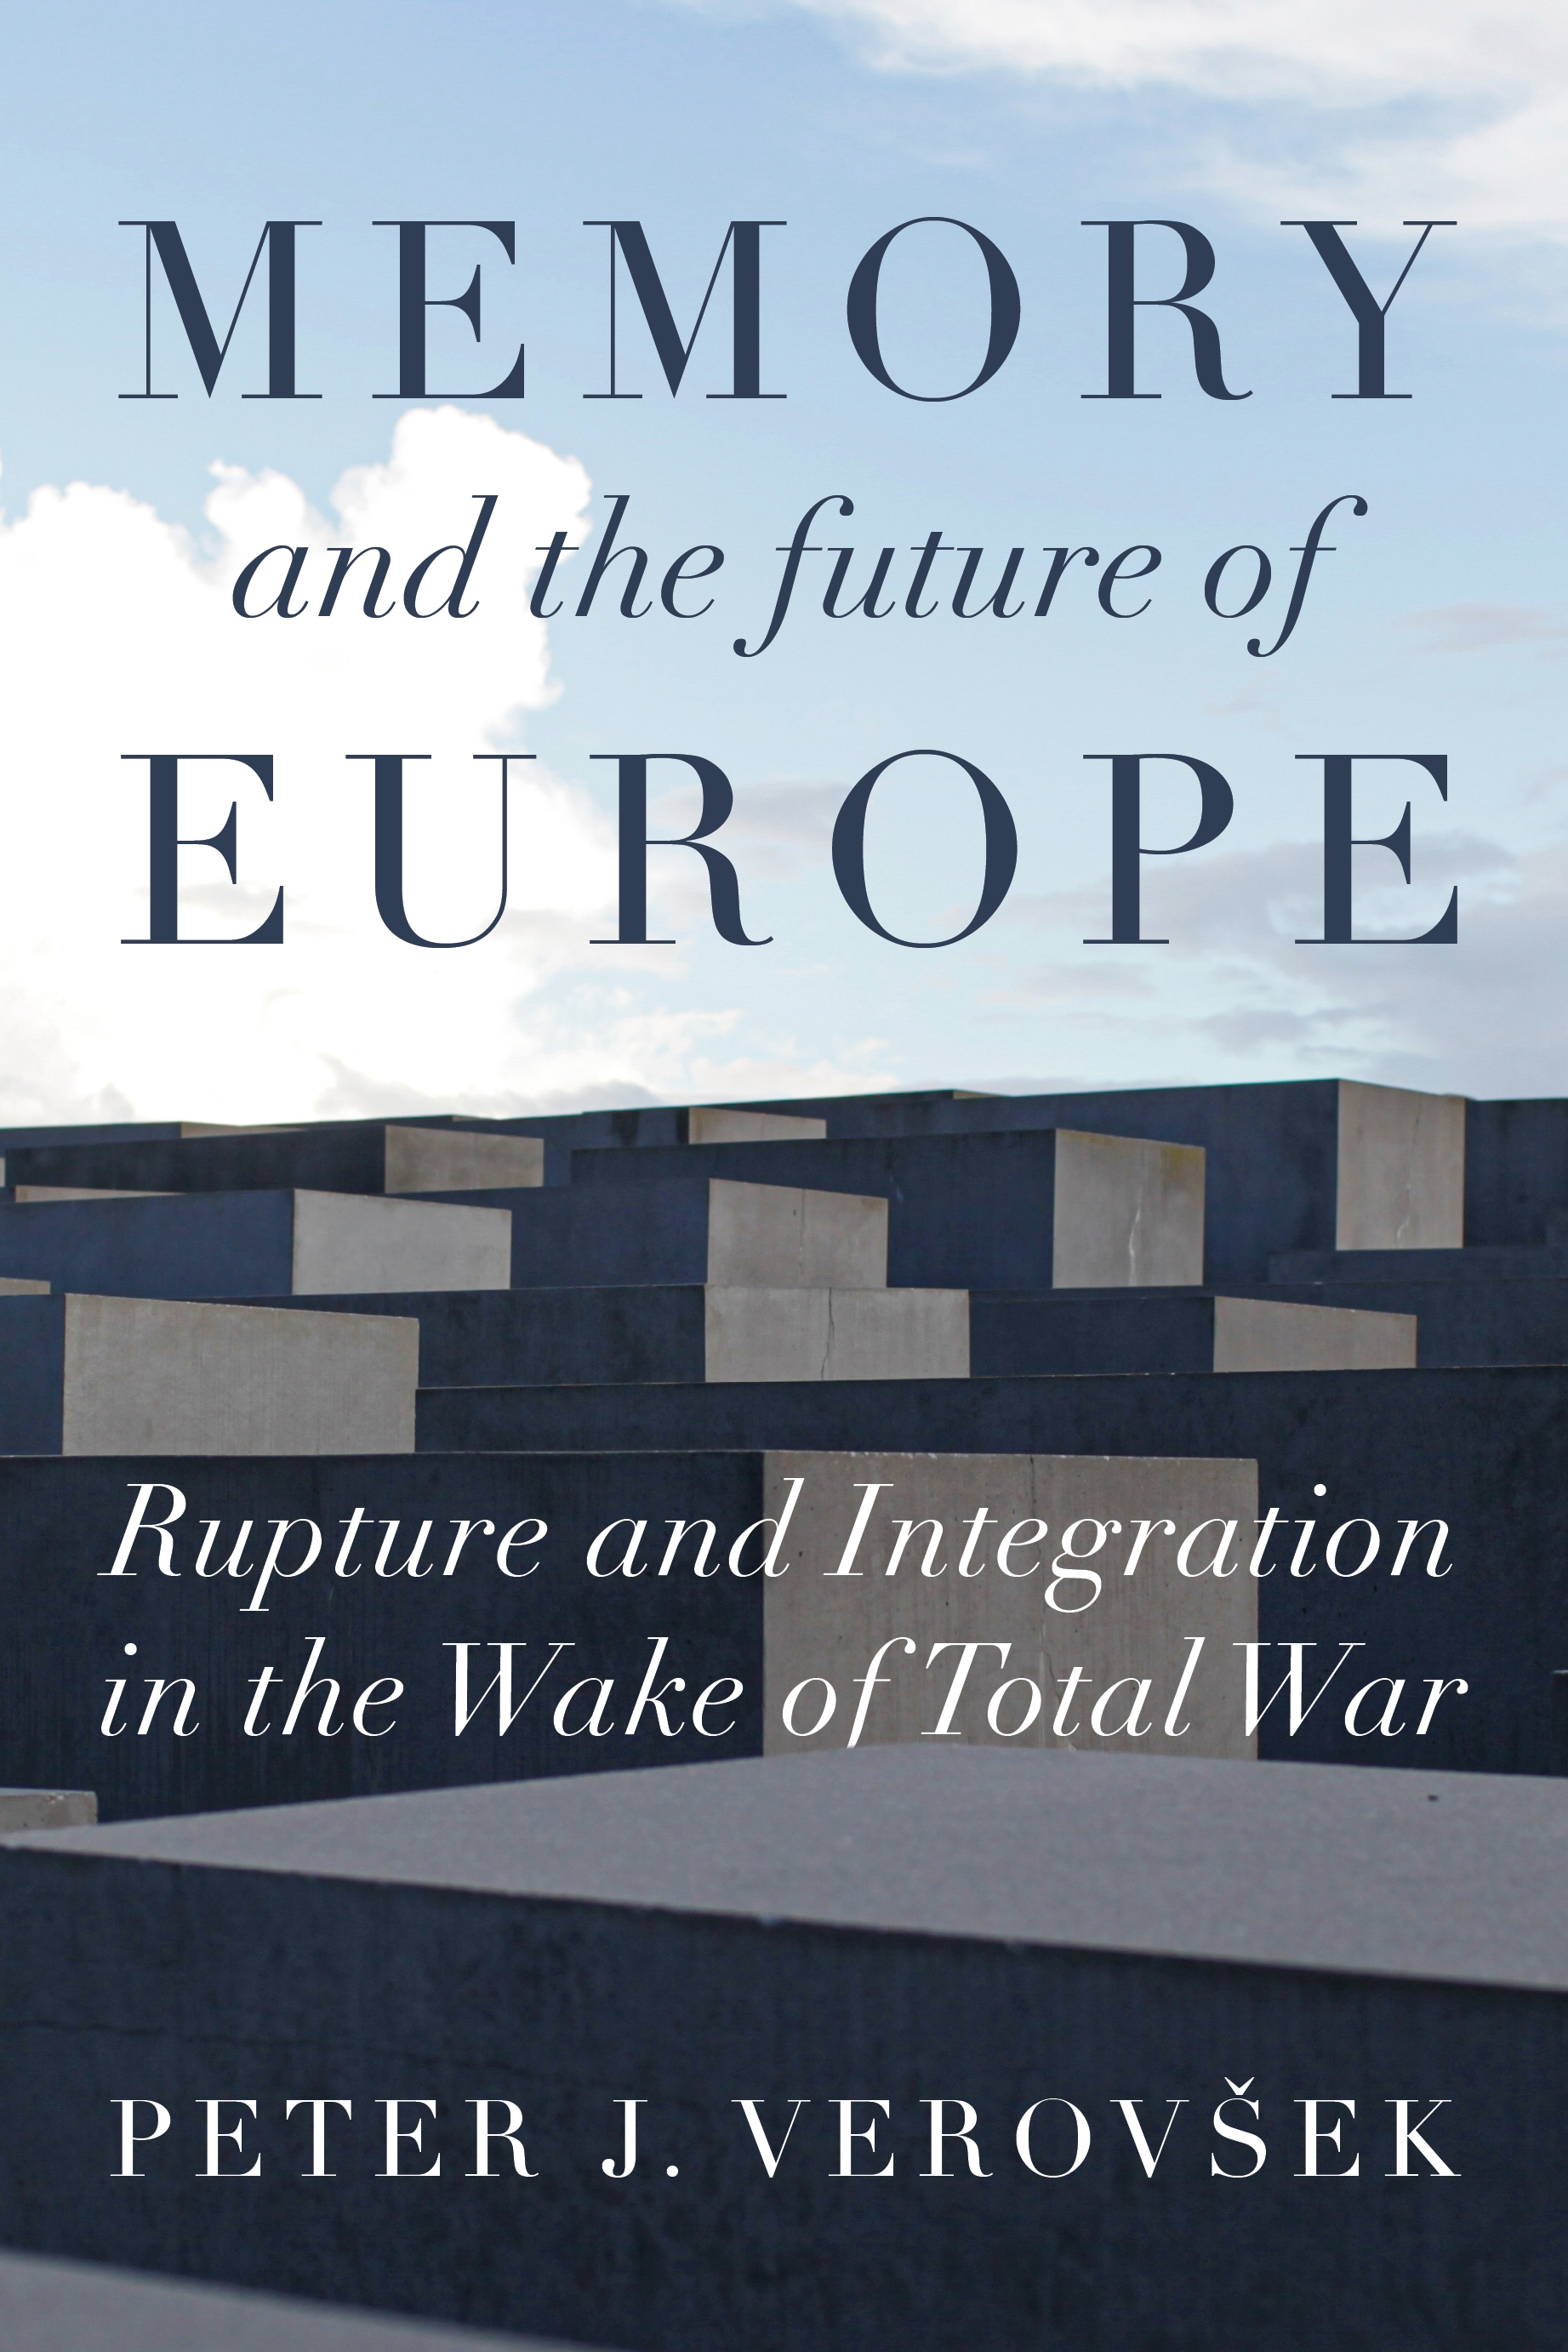 Memory and the future of Europe – Q&A with Peter J. Verovšek